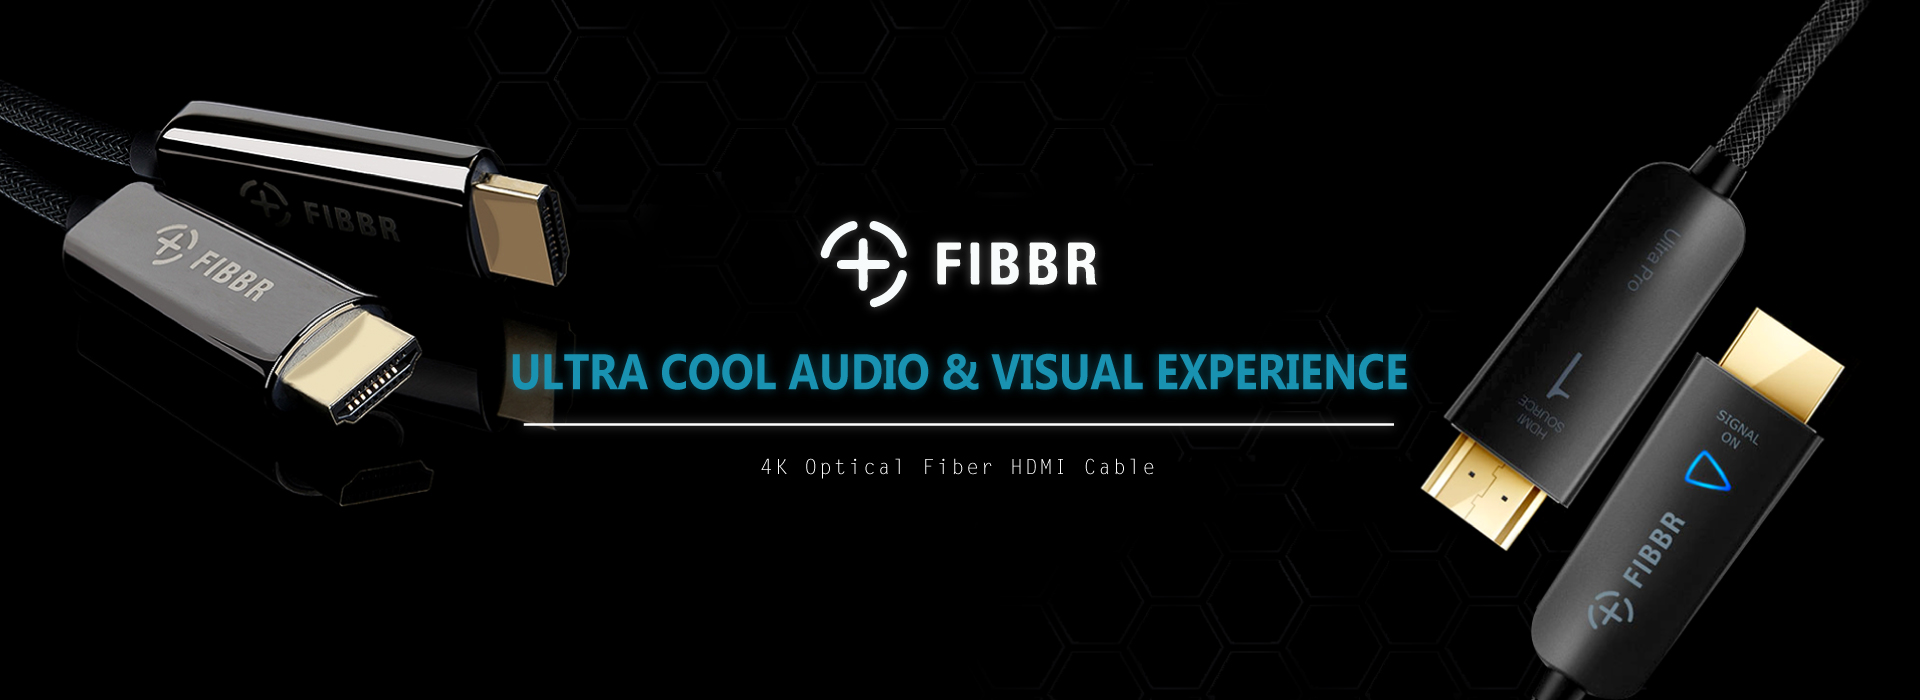 FIBBR Fiber Optic 4K HDMI Cable